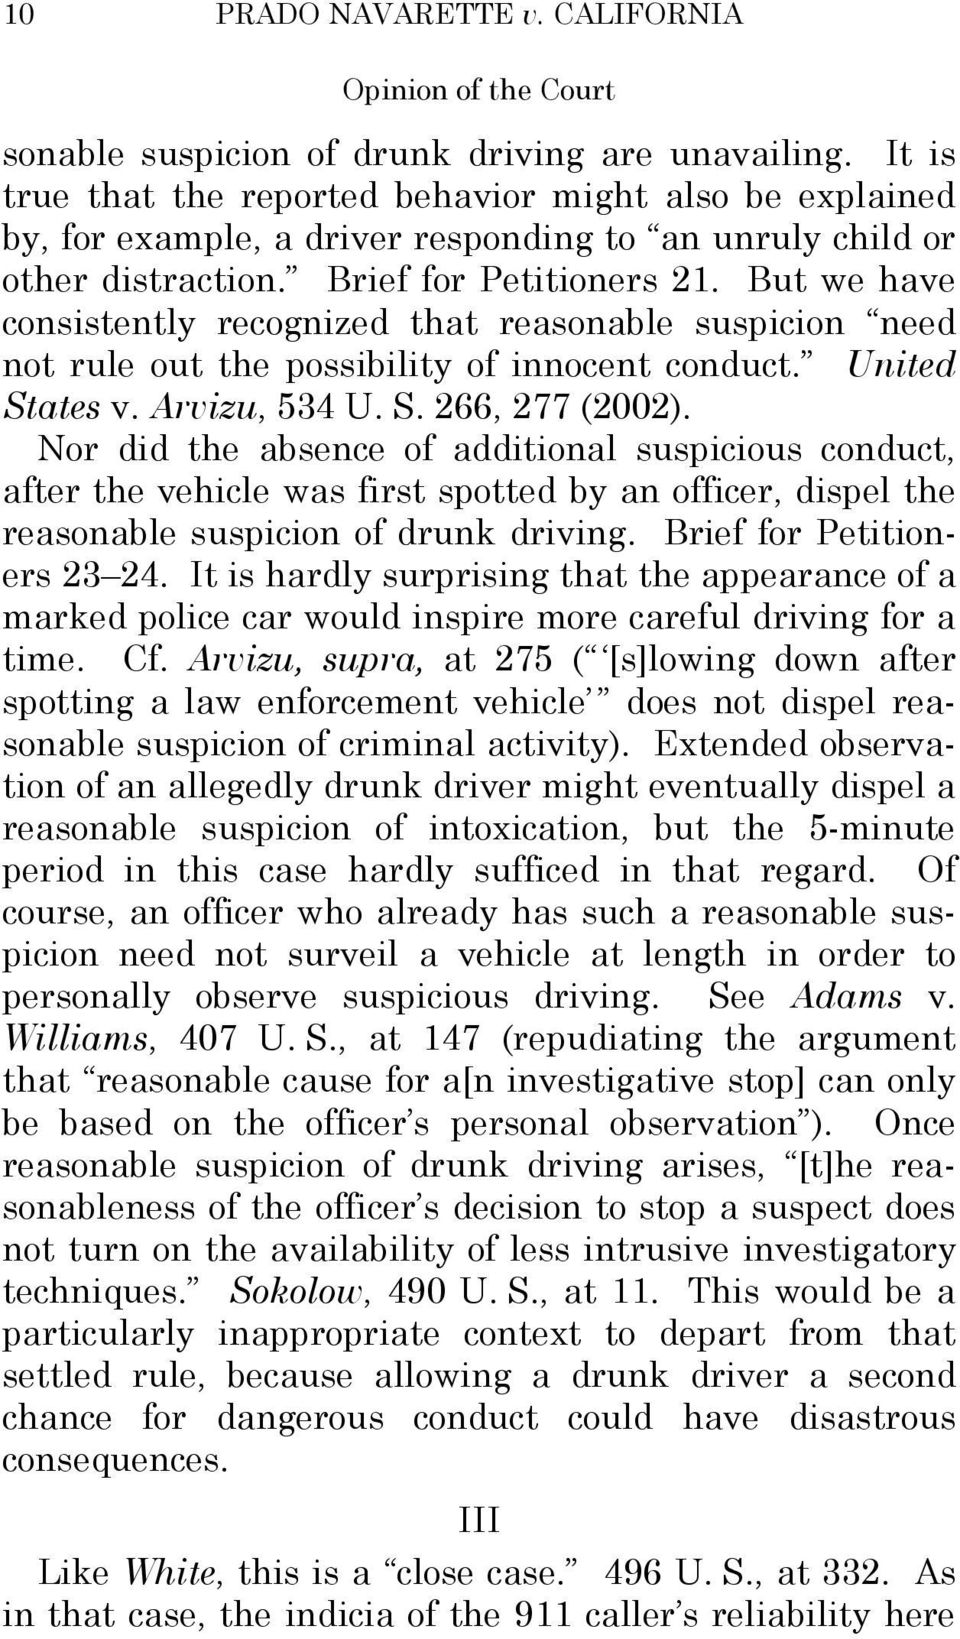 But we have consistently recognized that reasonable suspicion need not rule out the possibility of innocent conduct. United States v. Arvizu, 534 U. S. 266, 277 (2002).